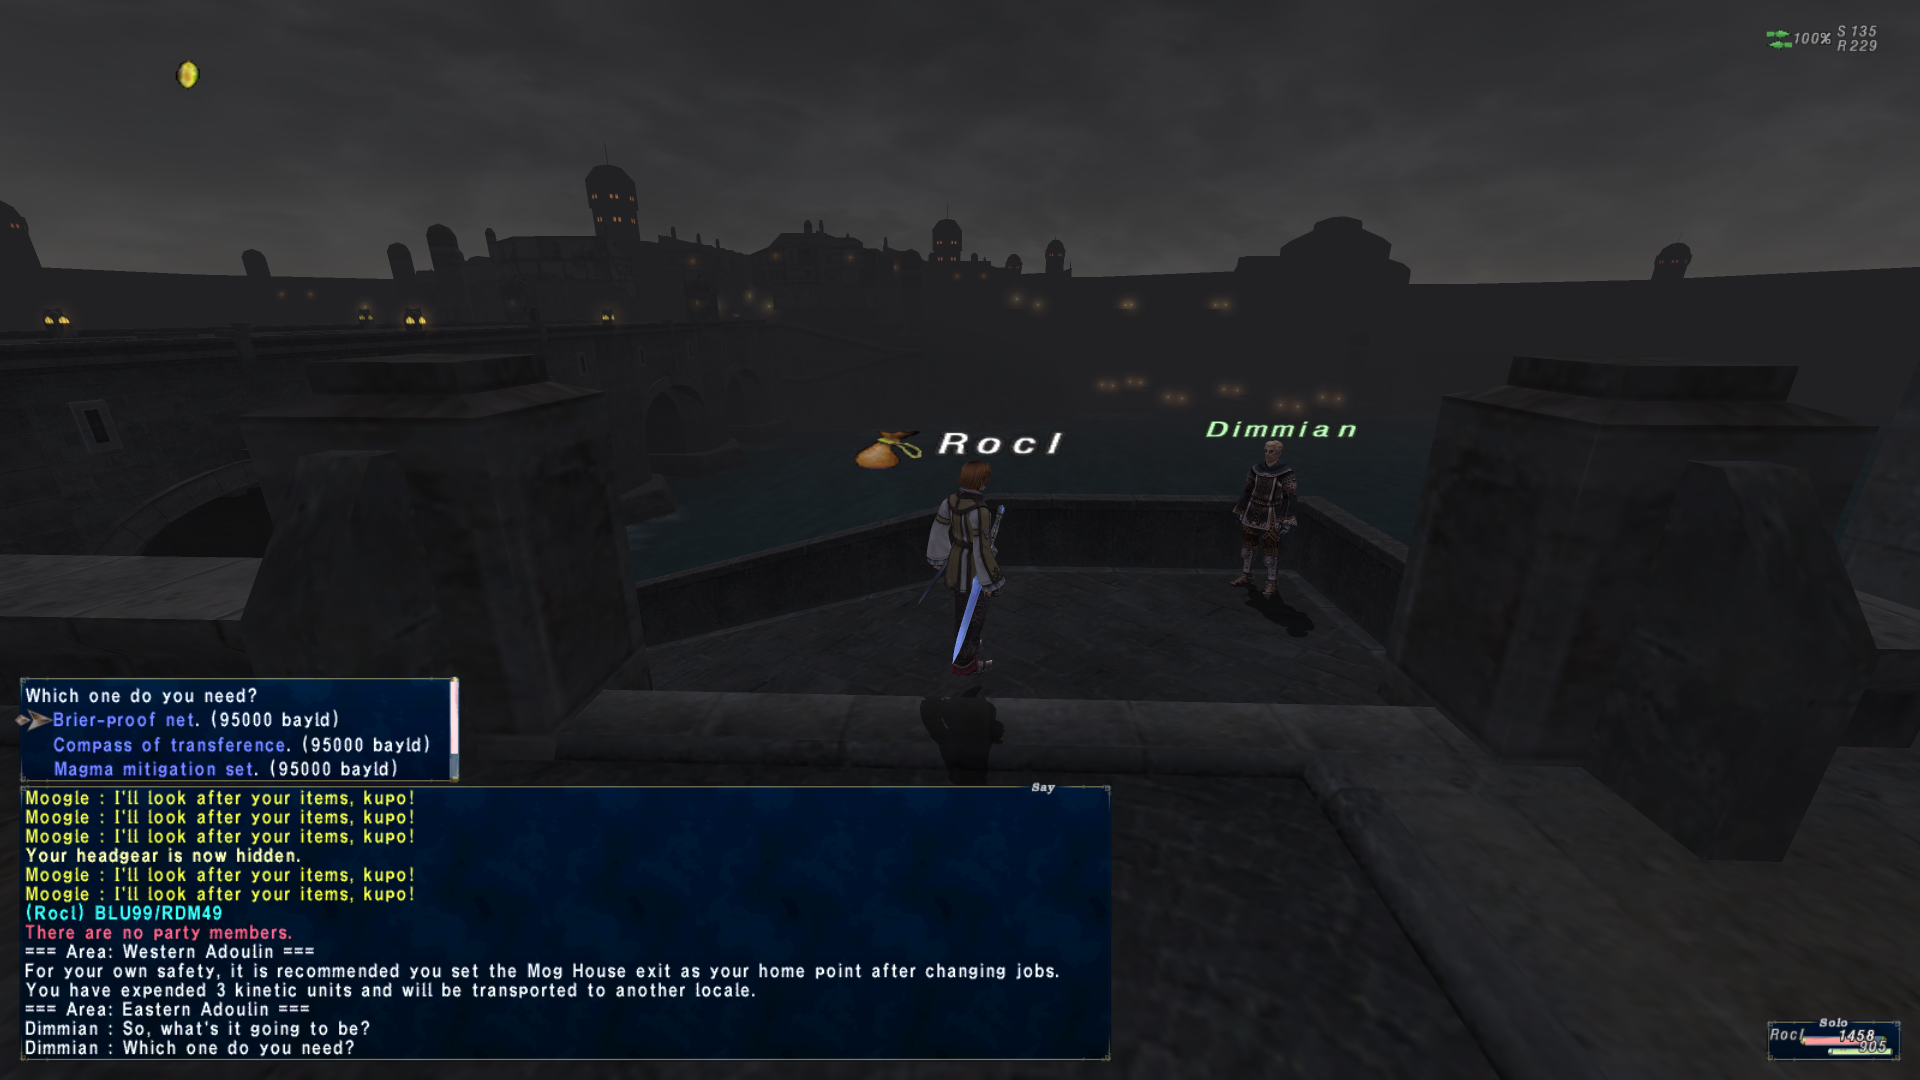 solracht ffxi this game least 29th cancel servers long many congested roots time until facing through same problem cannot anyone guess levels shit again whack already sour anymore 4292013 mining discussion dont know mood probably from only stand break taking aaaaannnnddd that note think